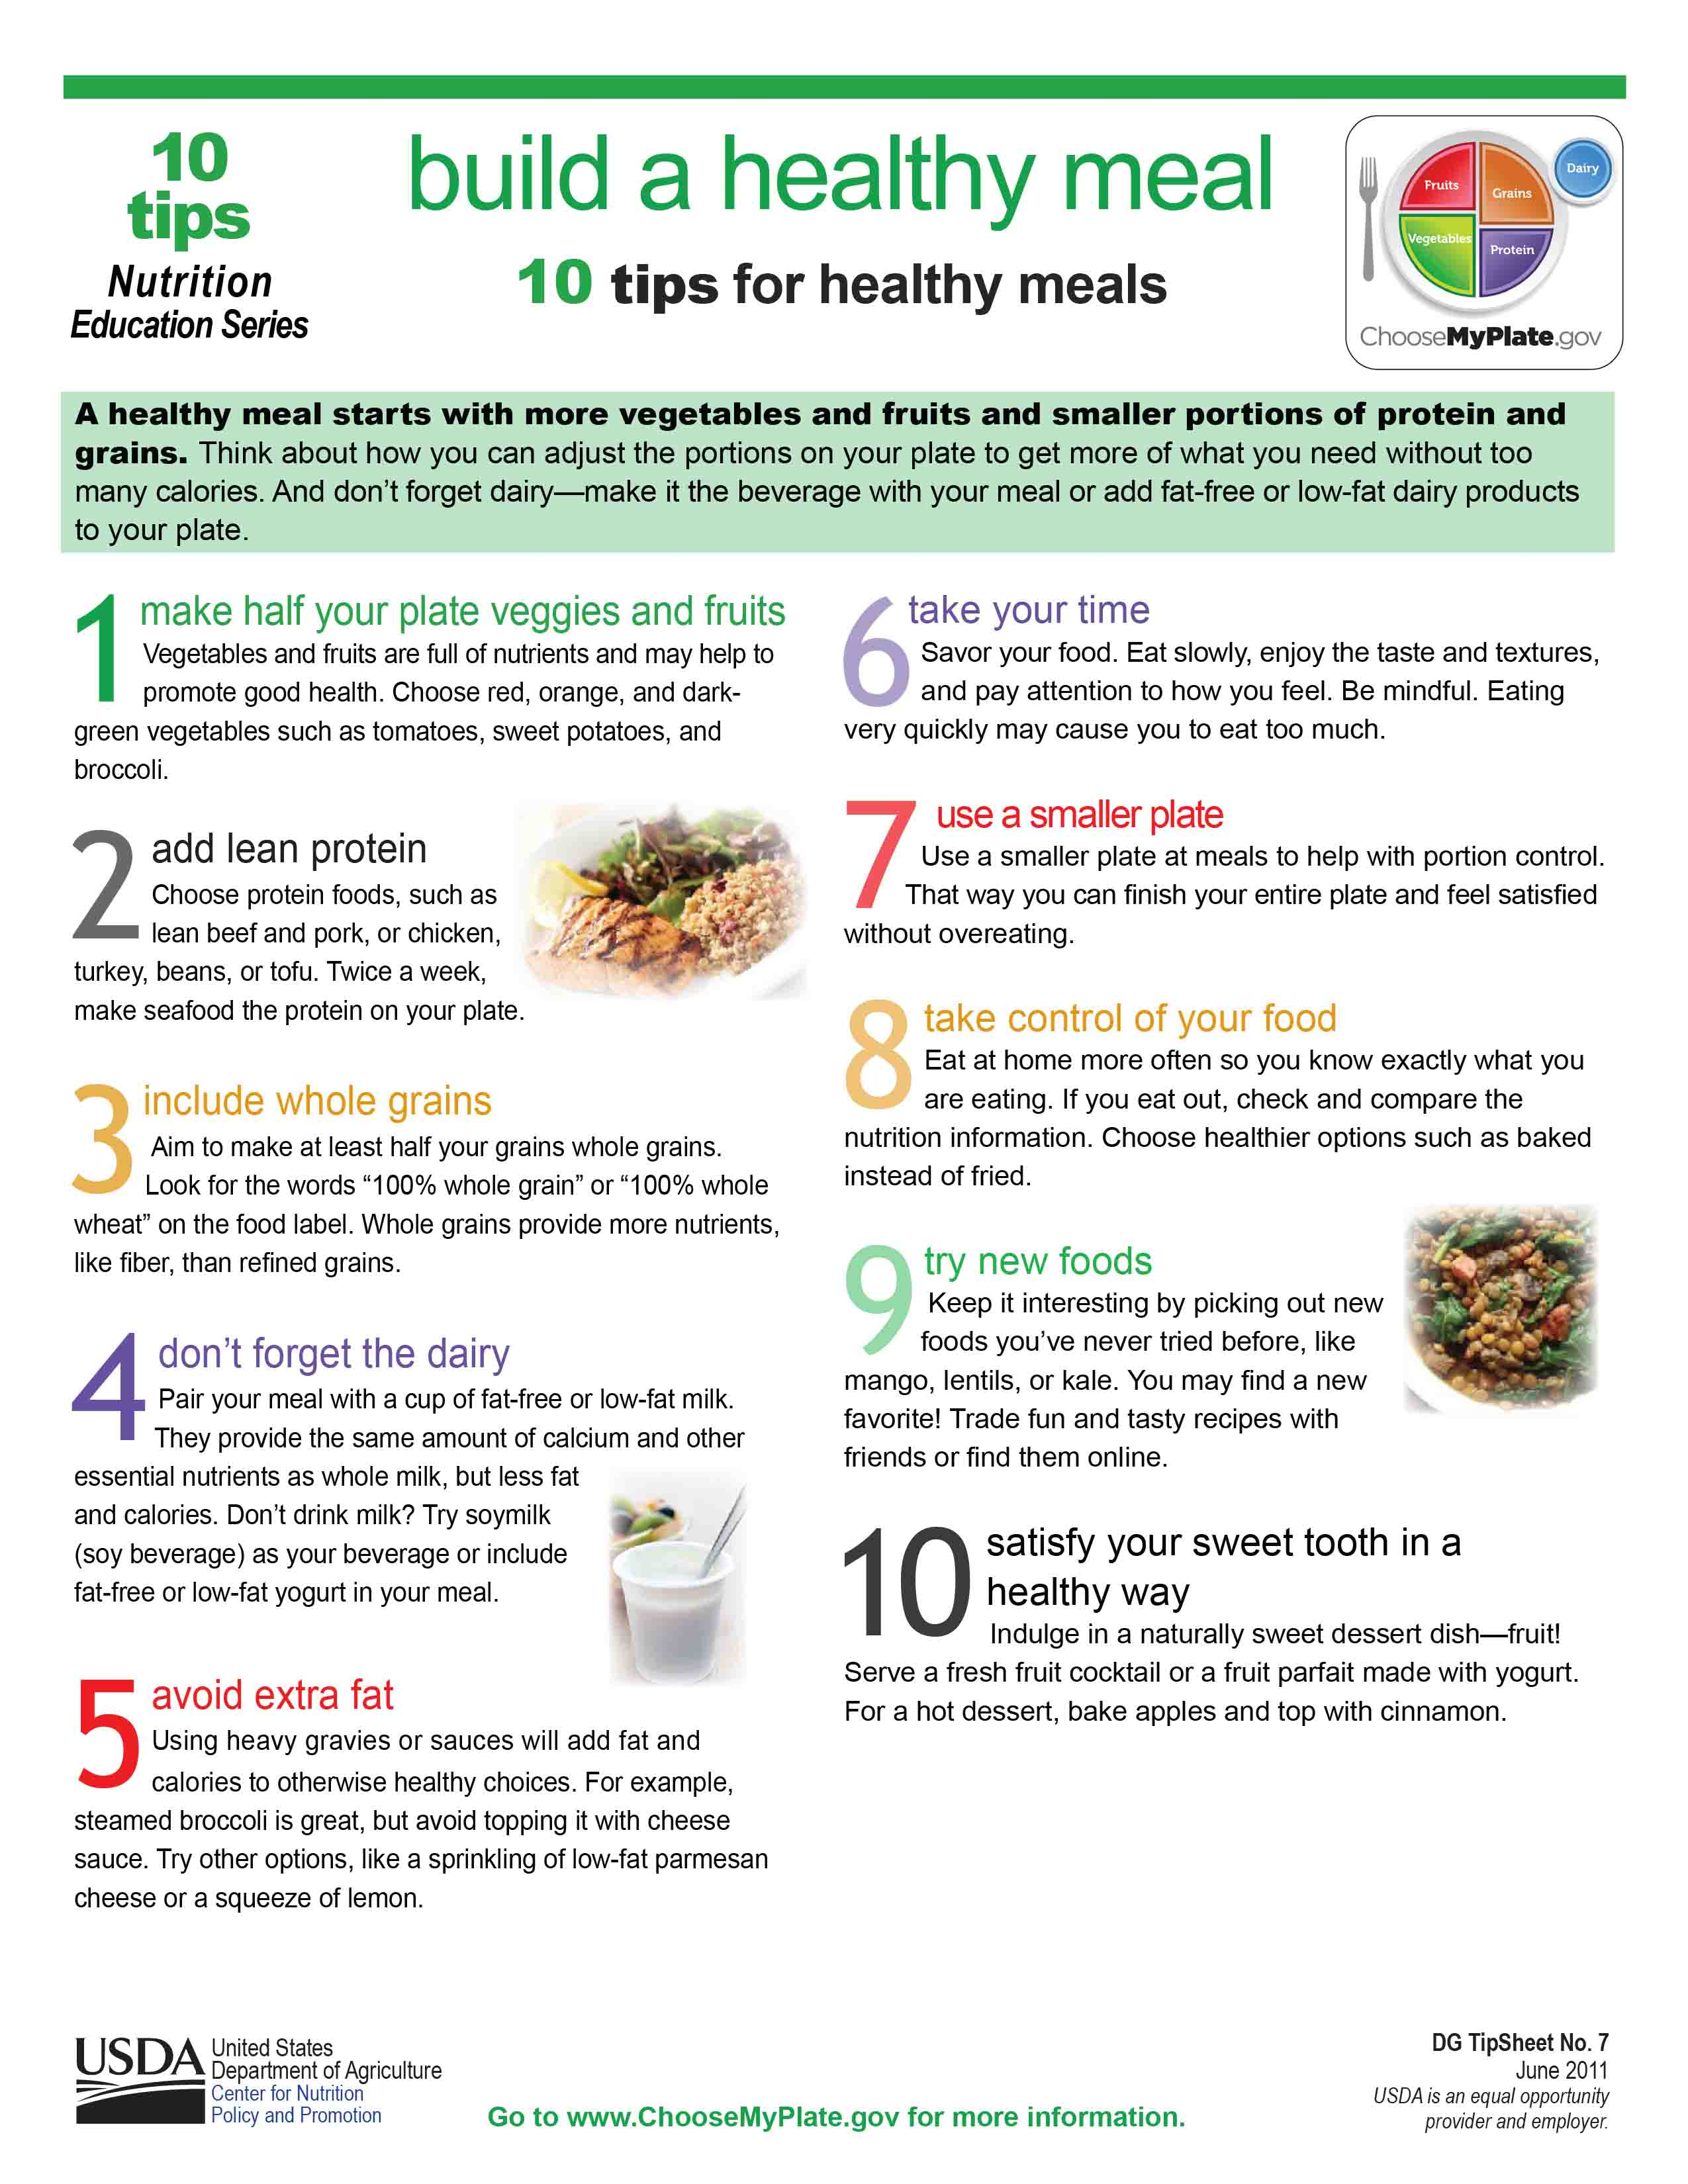 10 tips to building a healthy meal